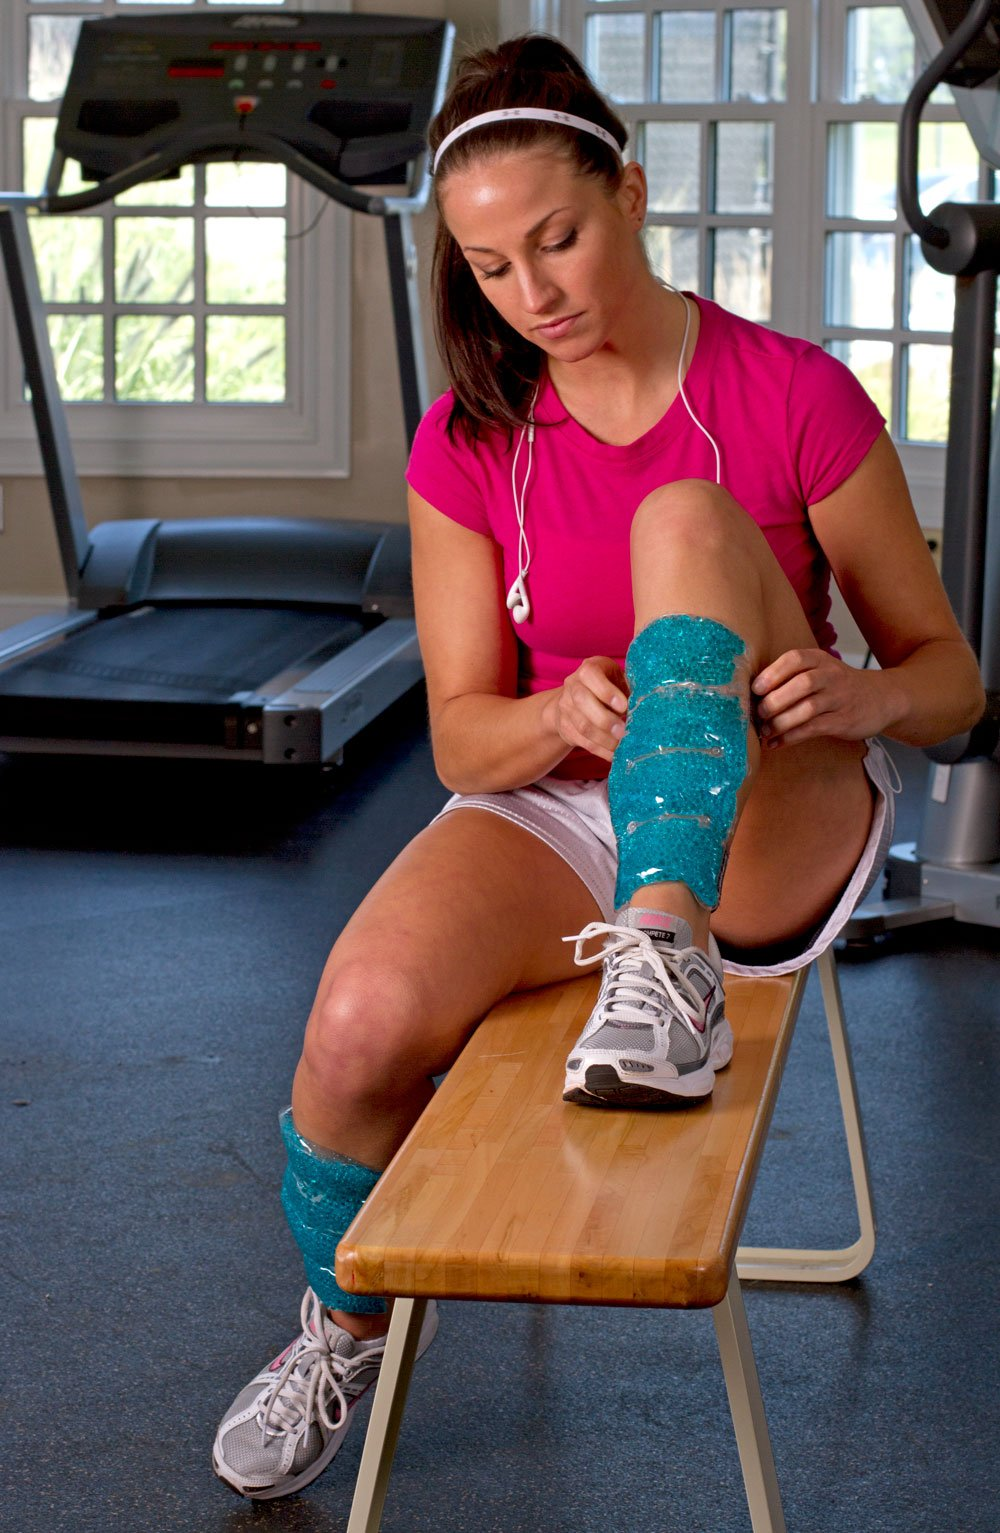 TheraPearl Shin Wraps Reusable Hot Cold Therapy, Two Pack, (Pack of 24) by THERA°PEARL (Image #3)